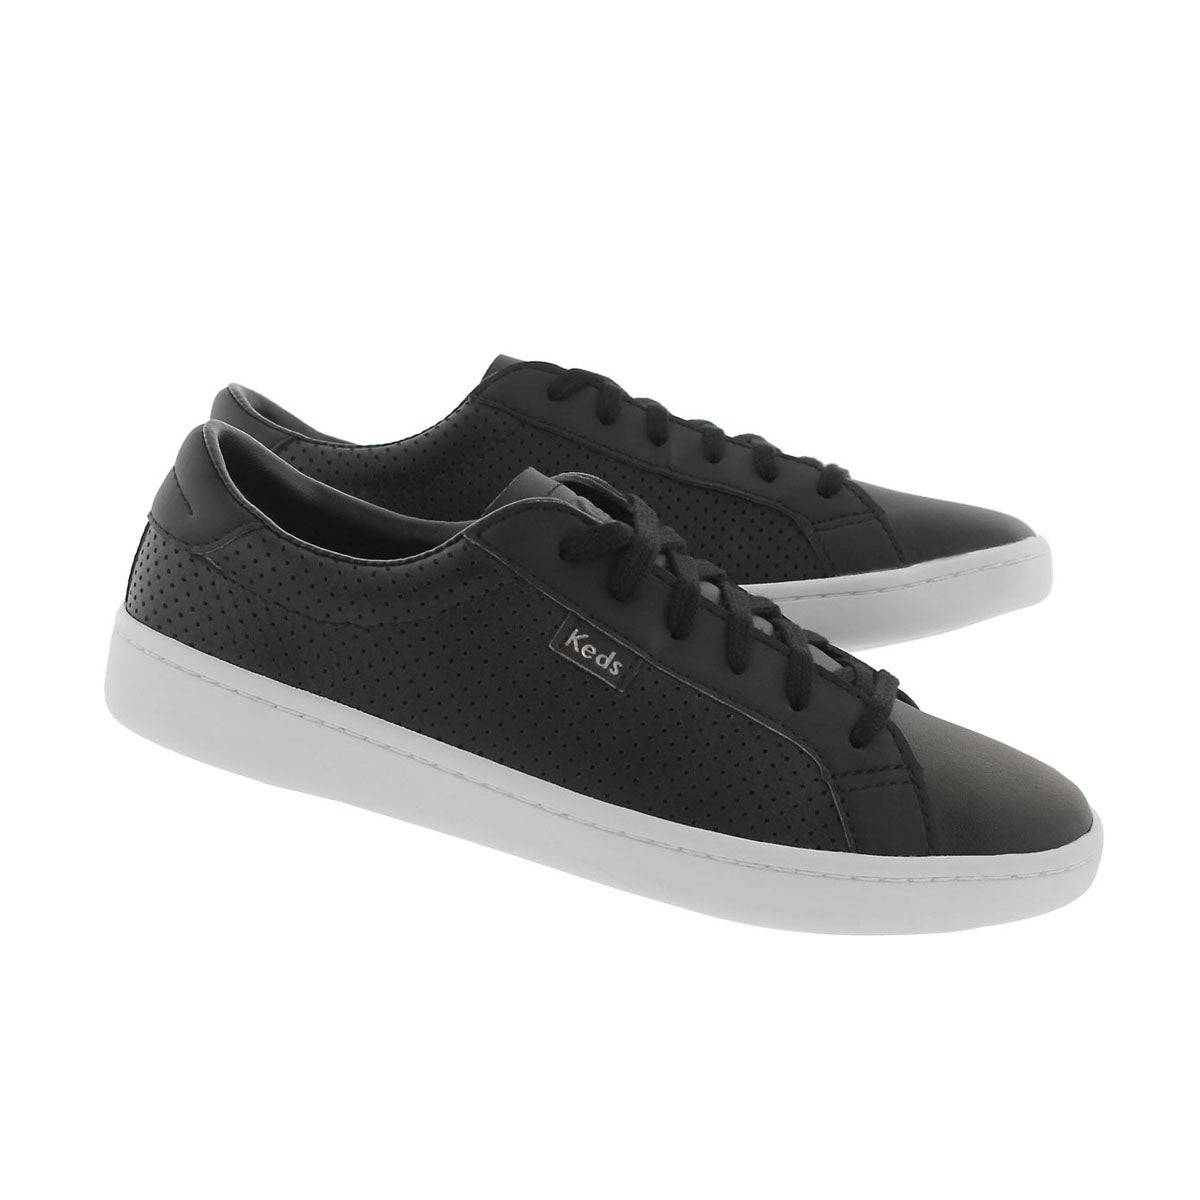 Grls Ace blk perf lace up sneaker